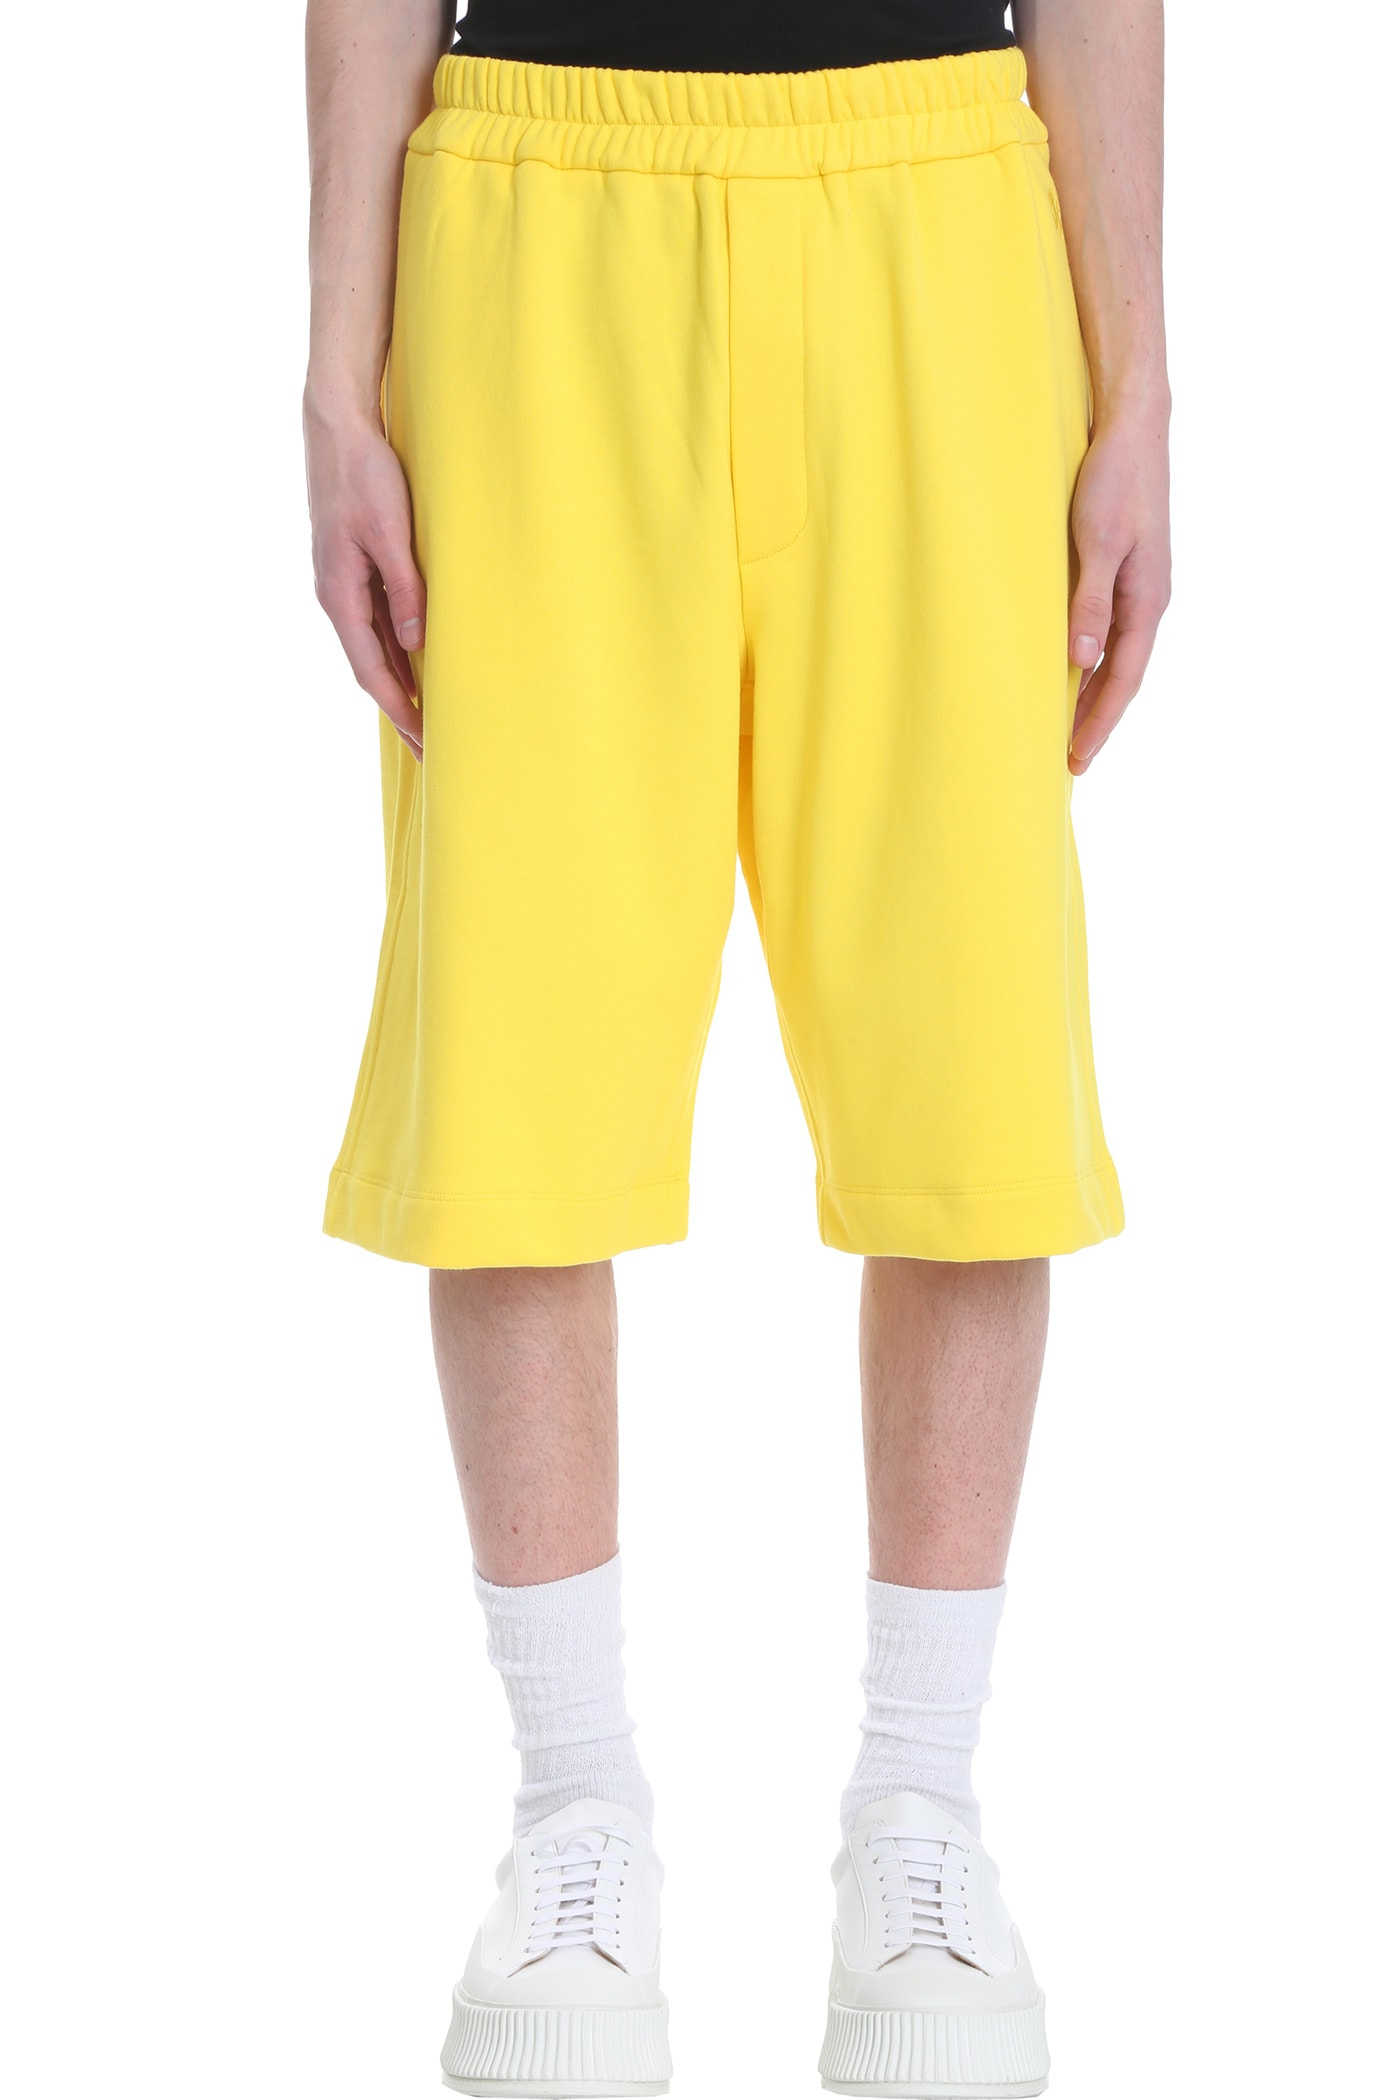 Jil Sander Cottons SHORTS IN YELLOW COTTON